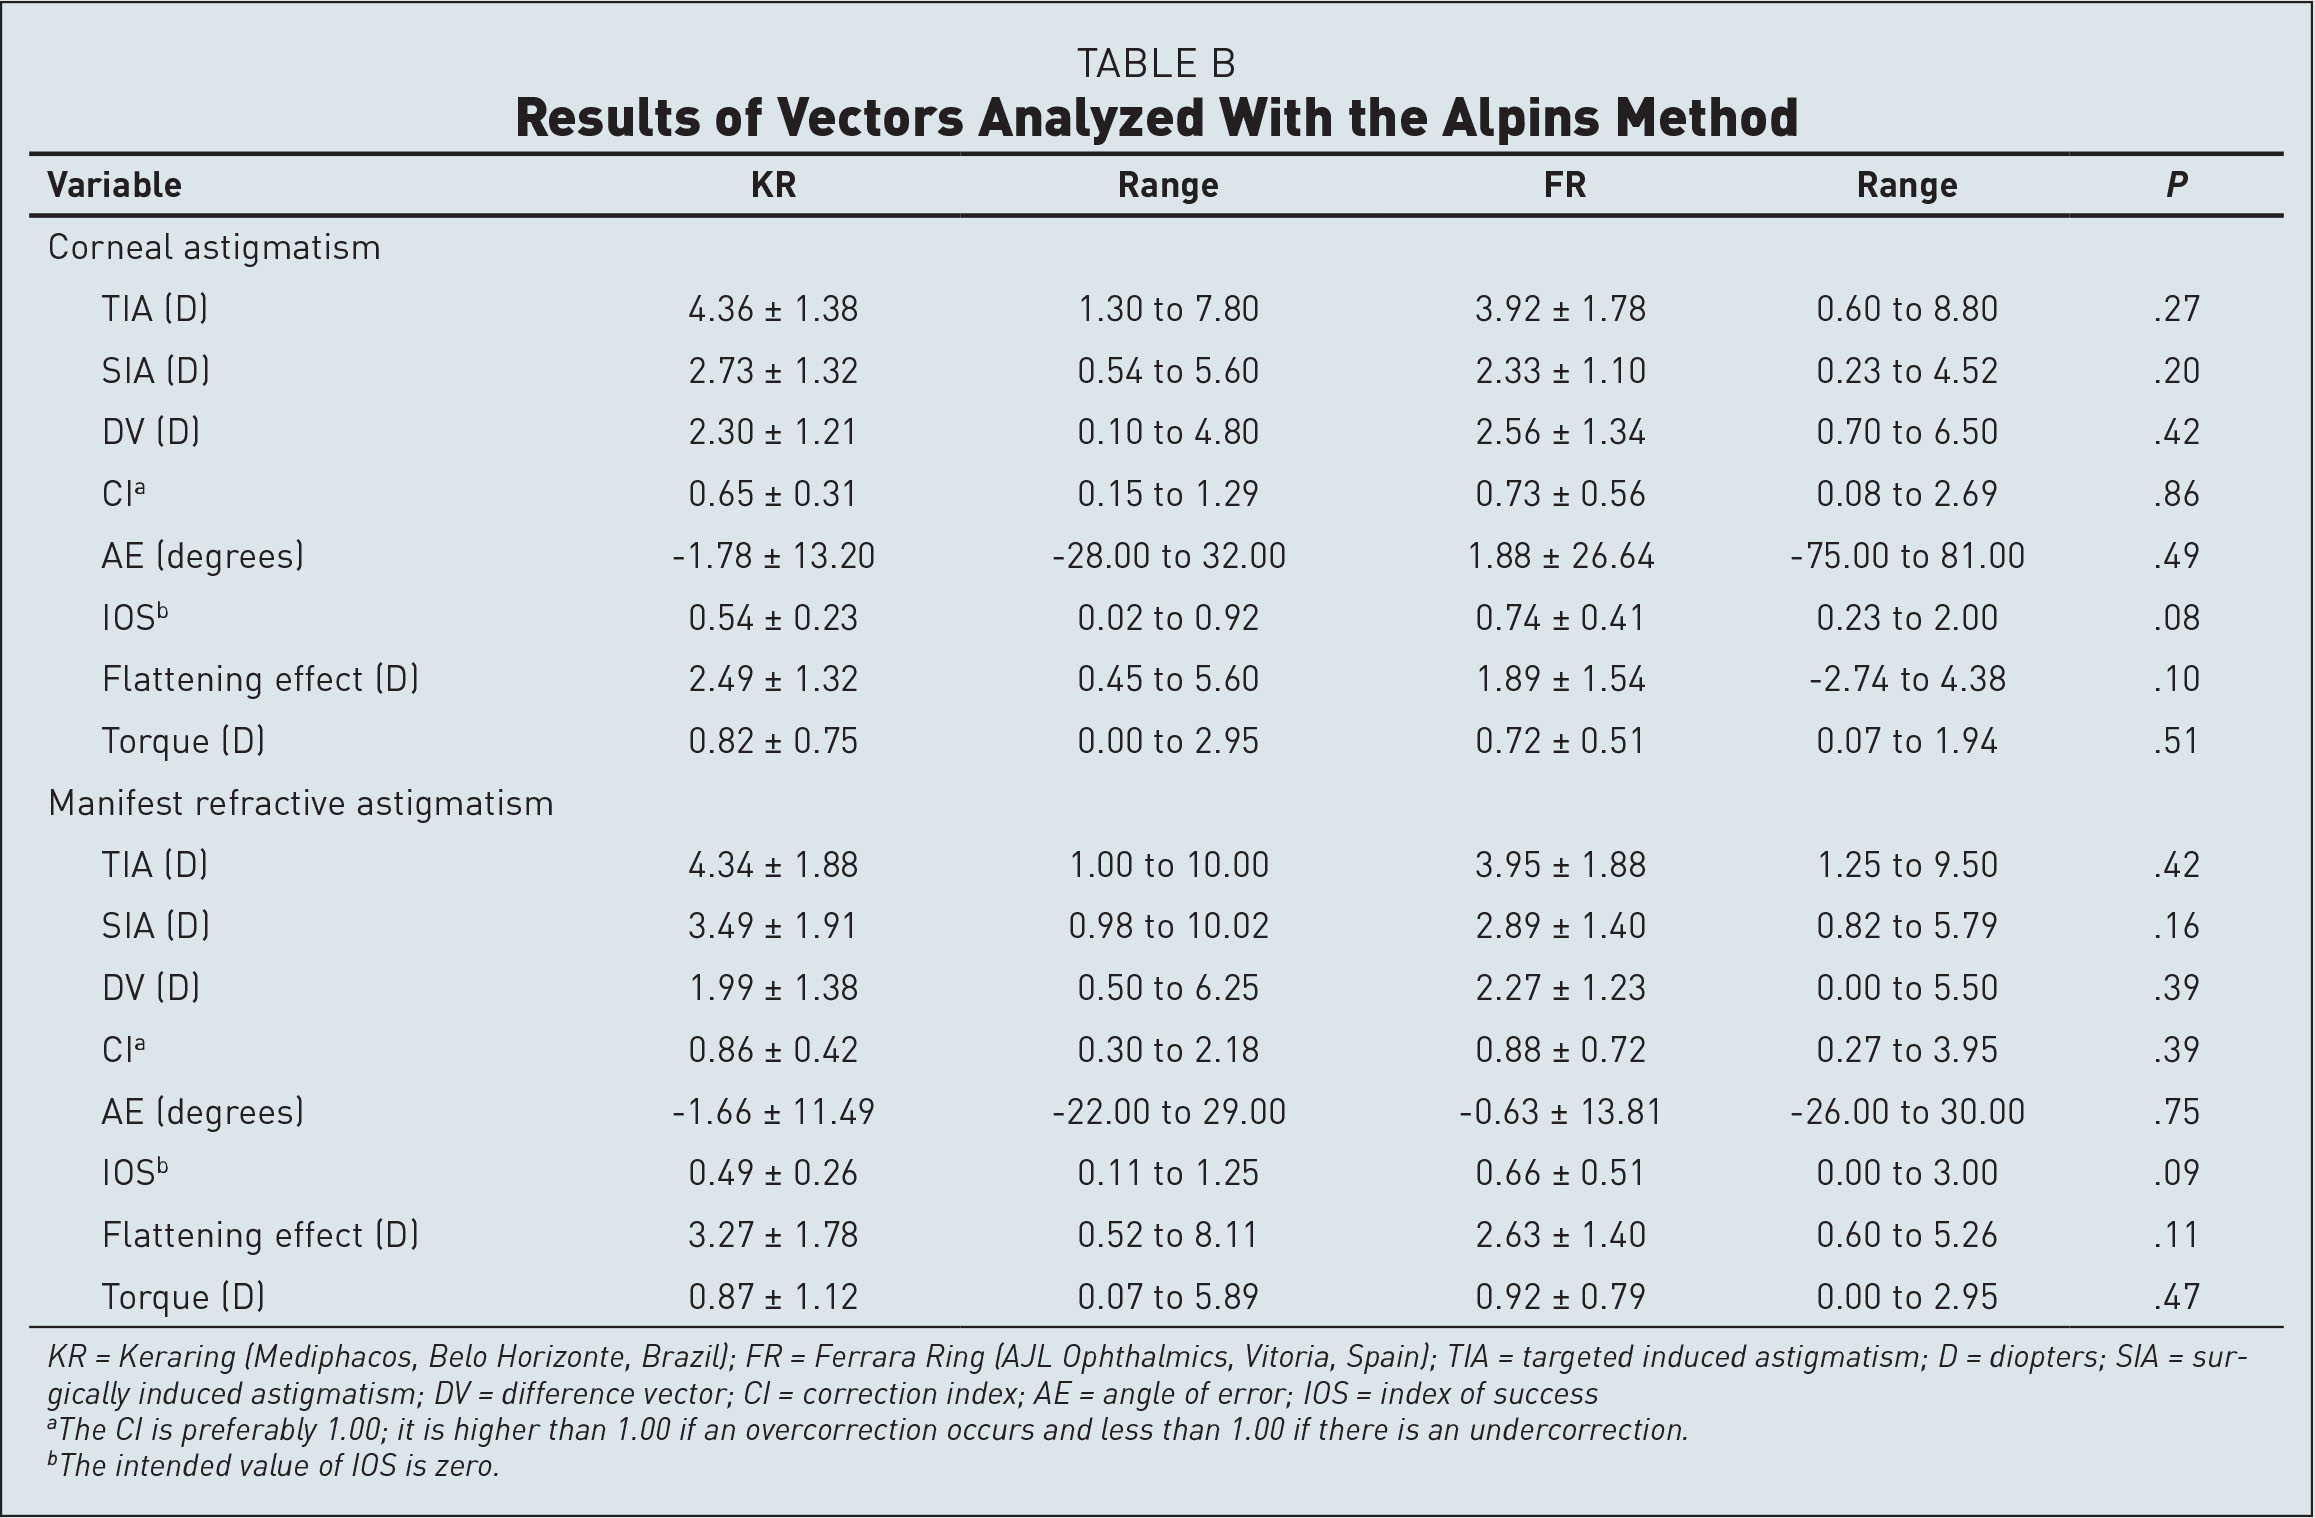 Results of Vectors Analyzed With the Alpins Method